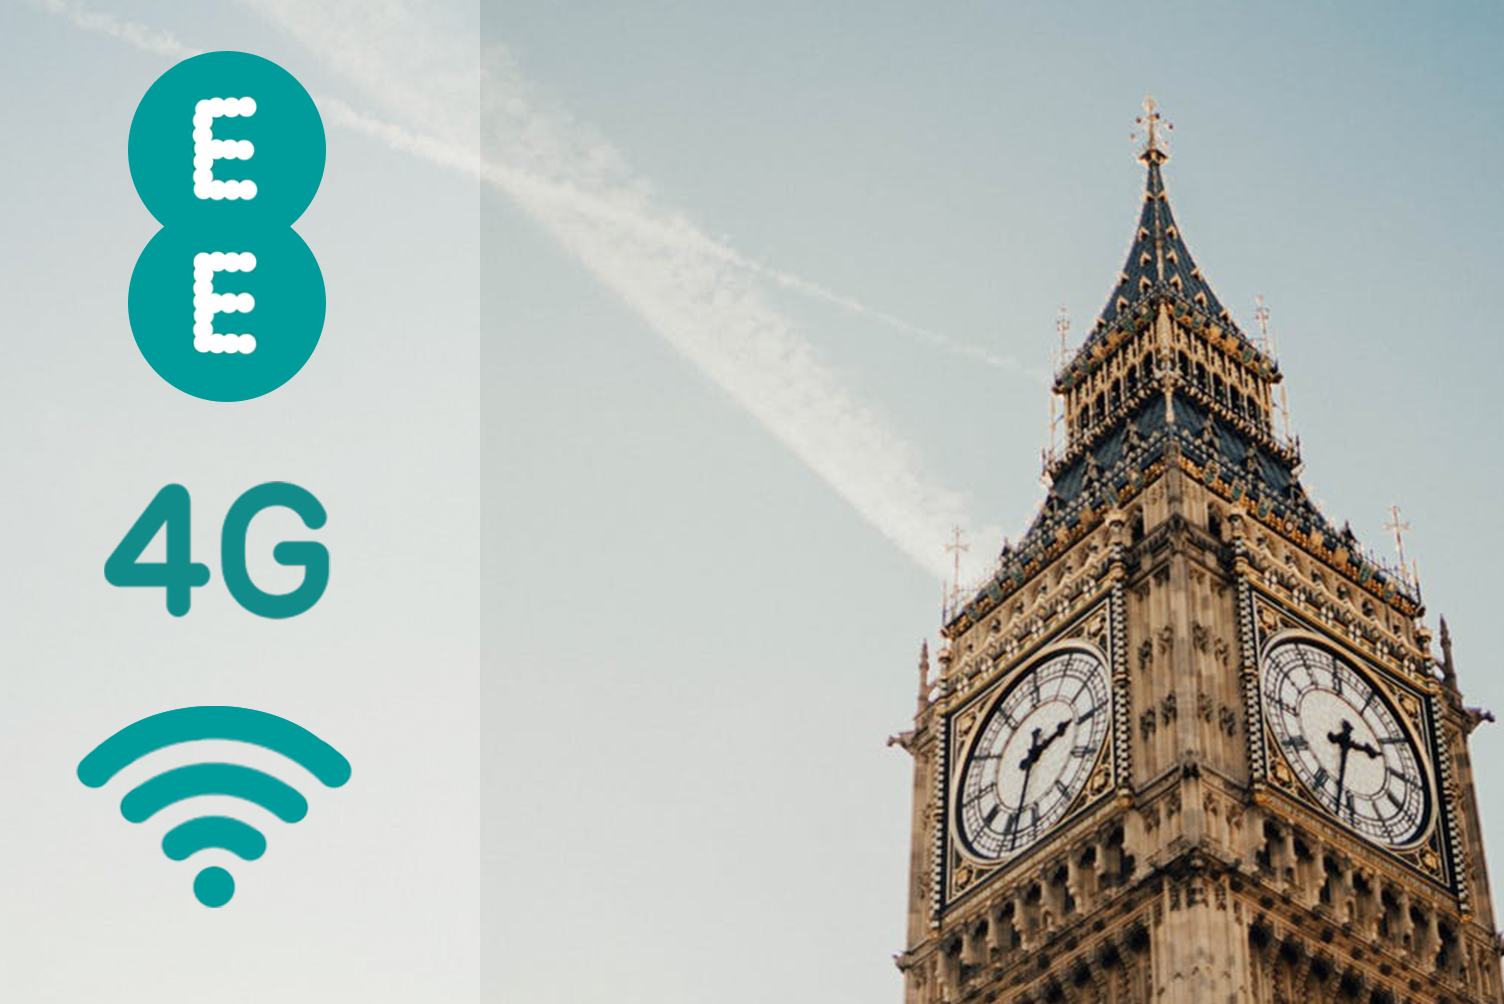 EE Accelerates Ultra-Fast 4G+ Mobile Broadband Across London UK